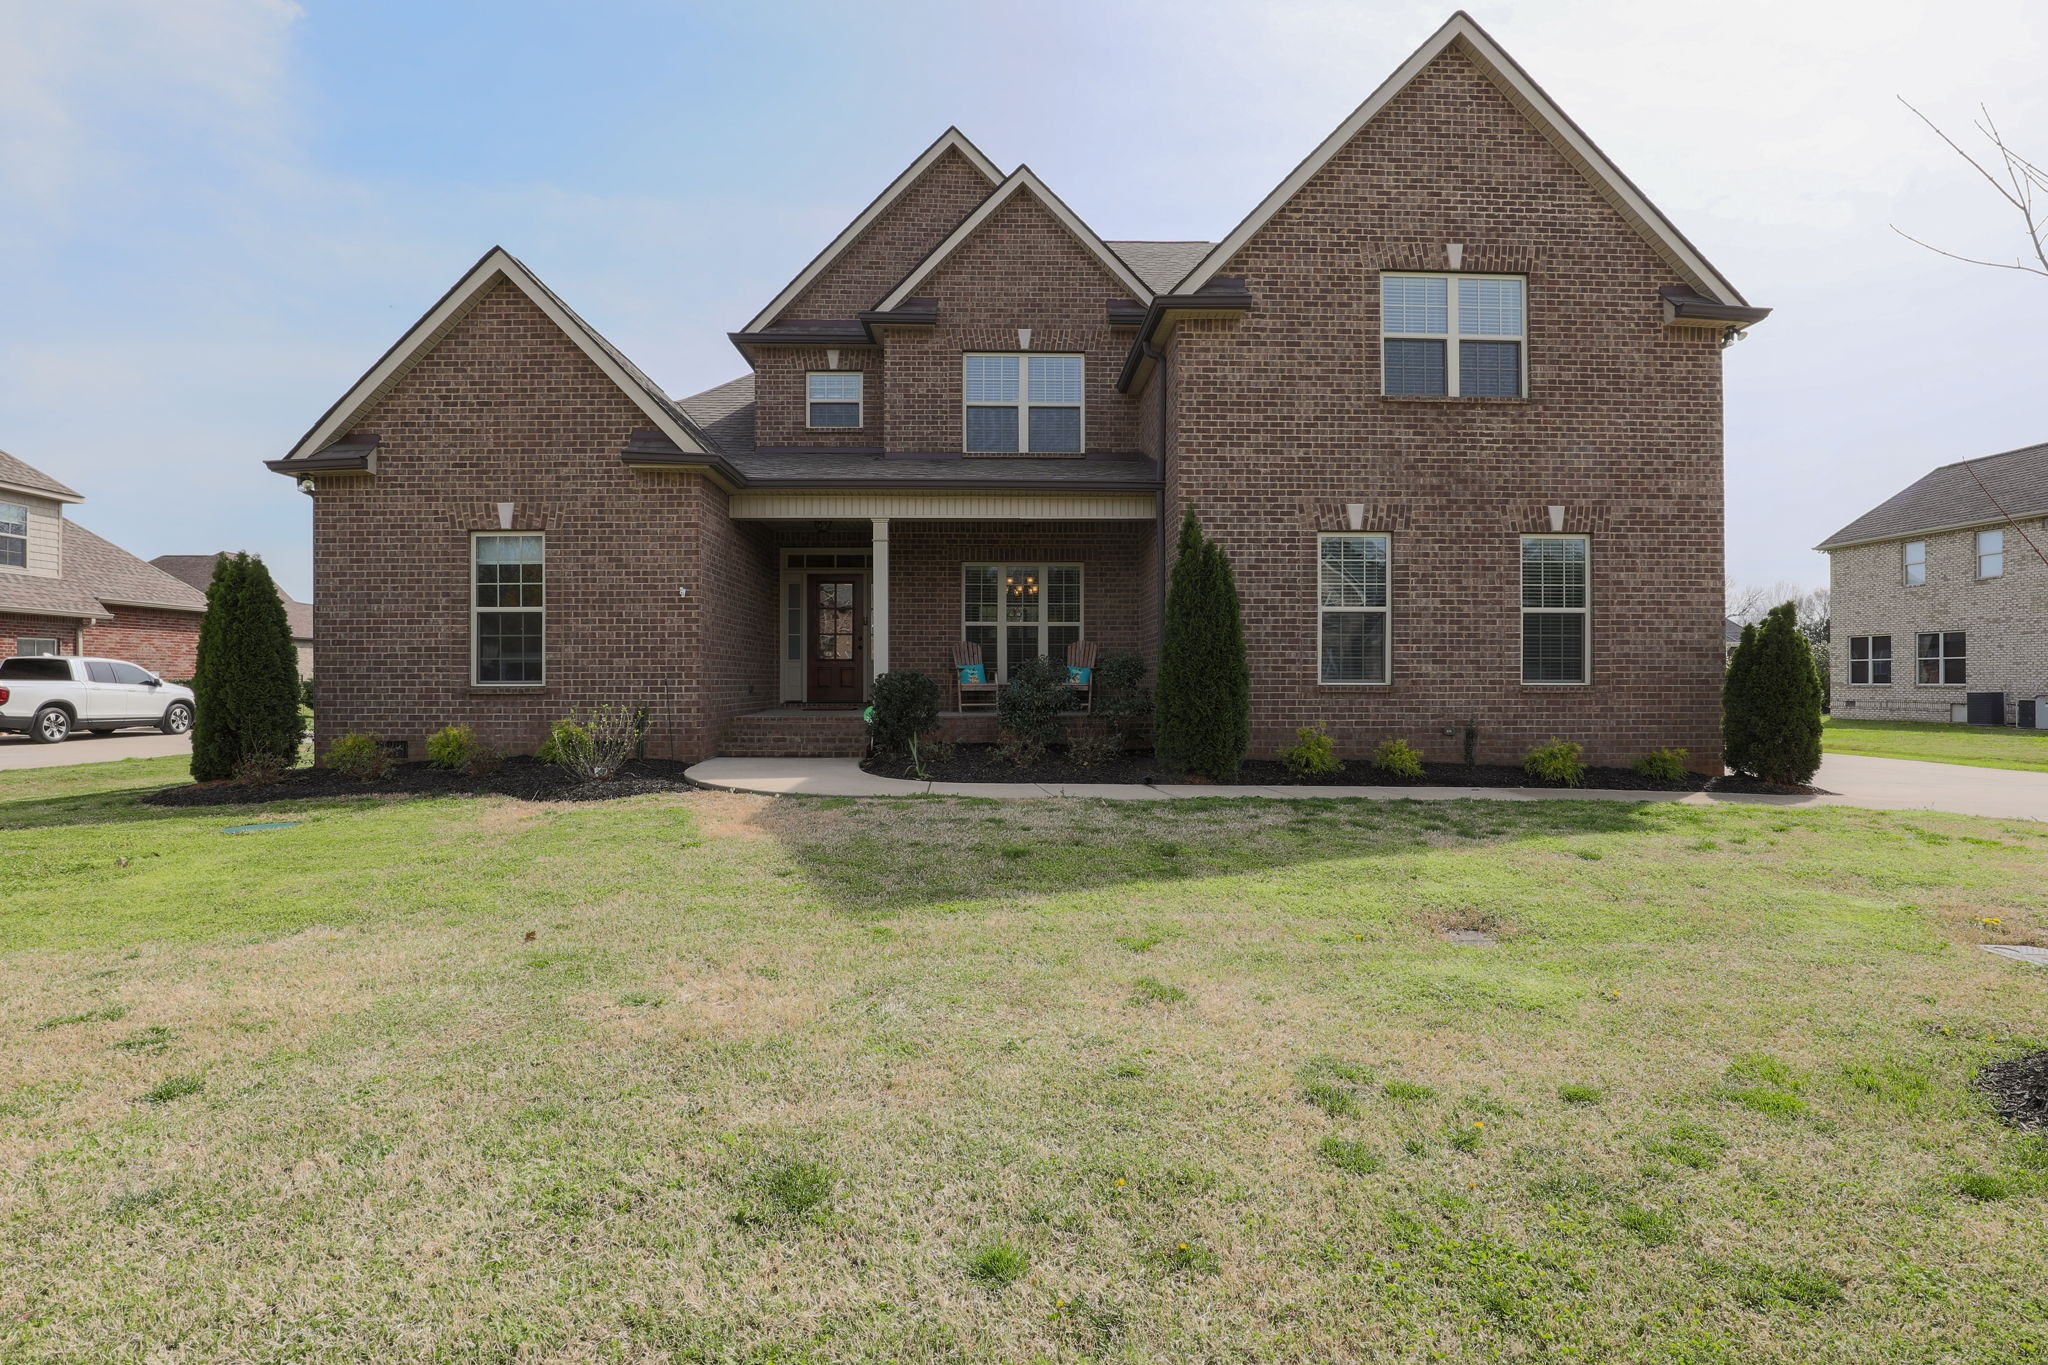 4306 Whirlaway Dr Property Photo - Murfreesboro, TN real estate listing